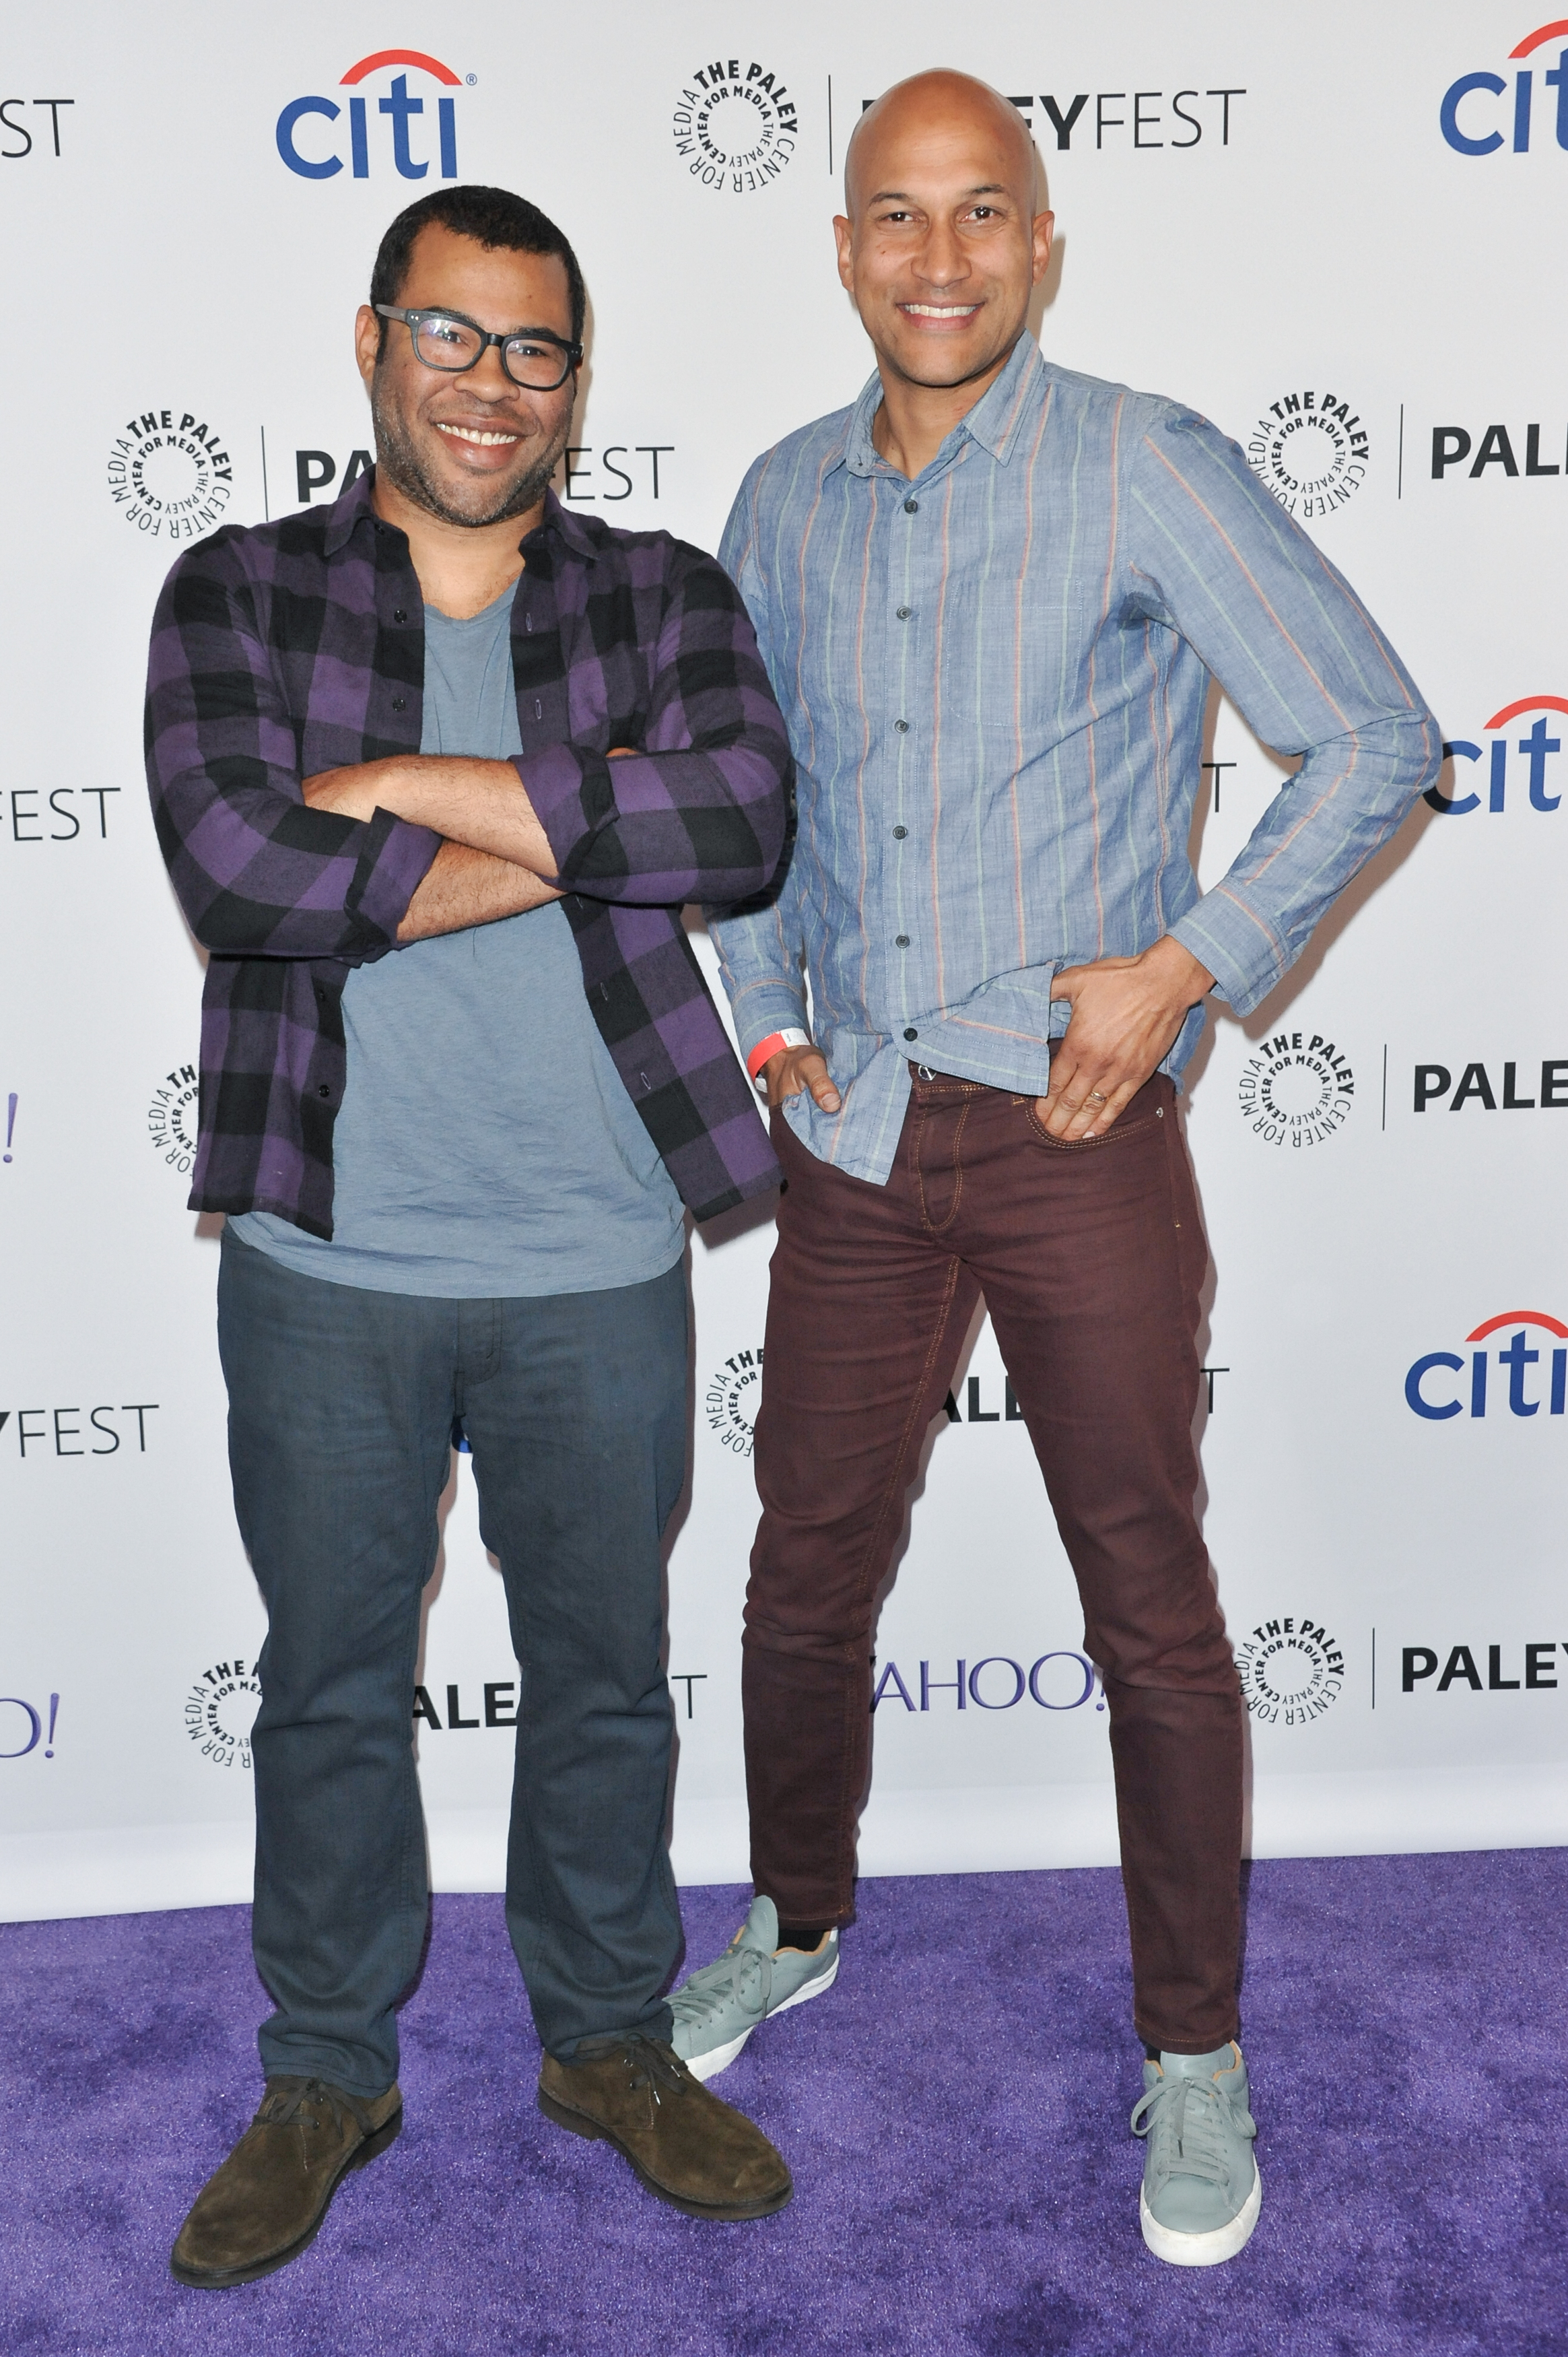 Jordan Peele (L) and Keegan-Michael Key (R)  arrive at the 32nd Annual Paleyfest :  A Salute to Comedy Central  in Los Angeles on March 7, 2015.